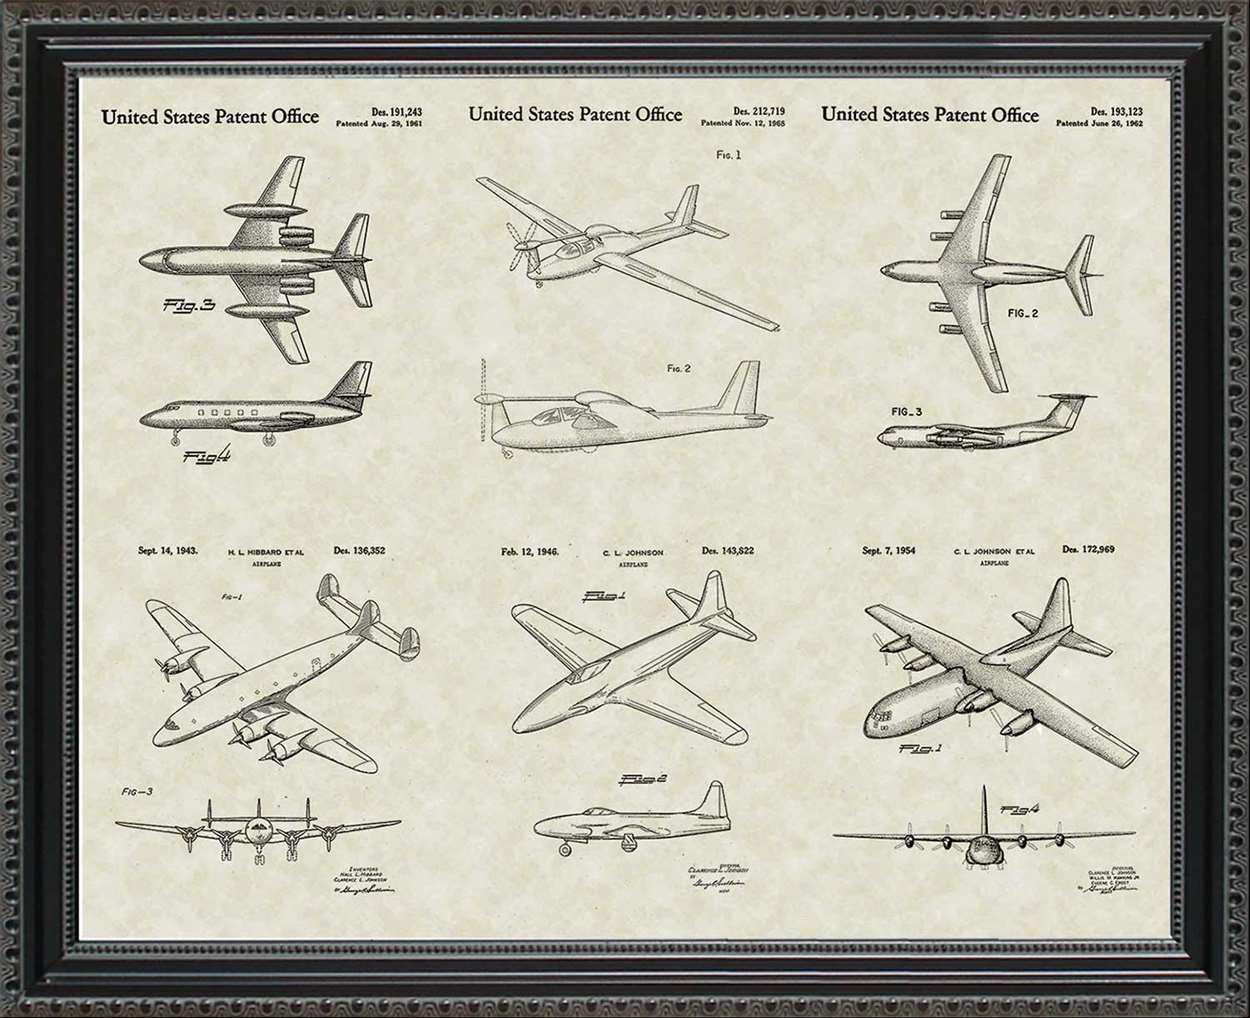 Lockheed-Martin Aircraft Patents, 20x24